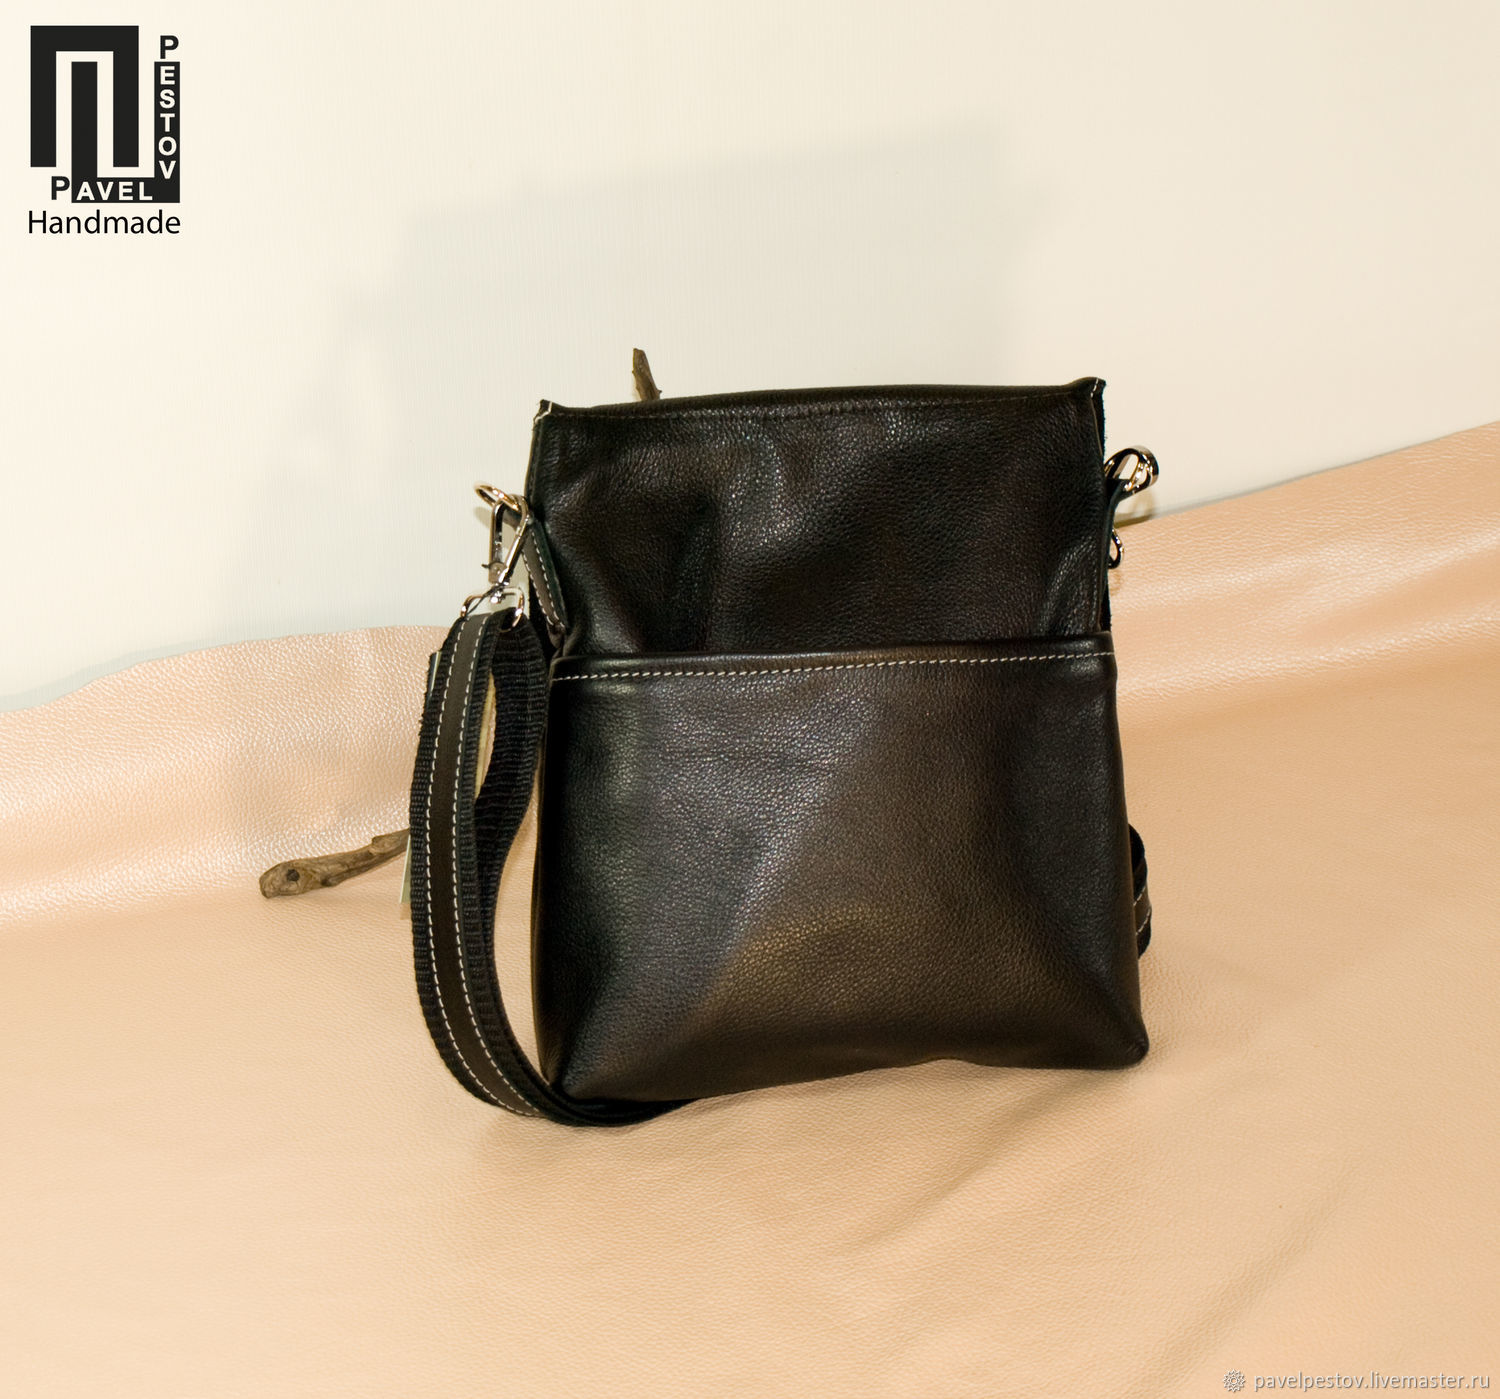 369469823473 Pavel Pestov Men s Bags handmade. Men s shoulder bag Black (envelope)-2.